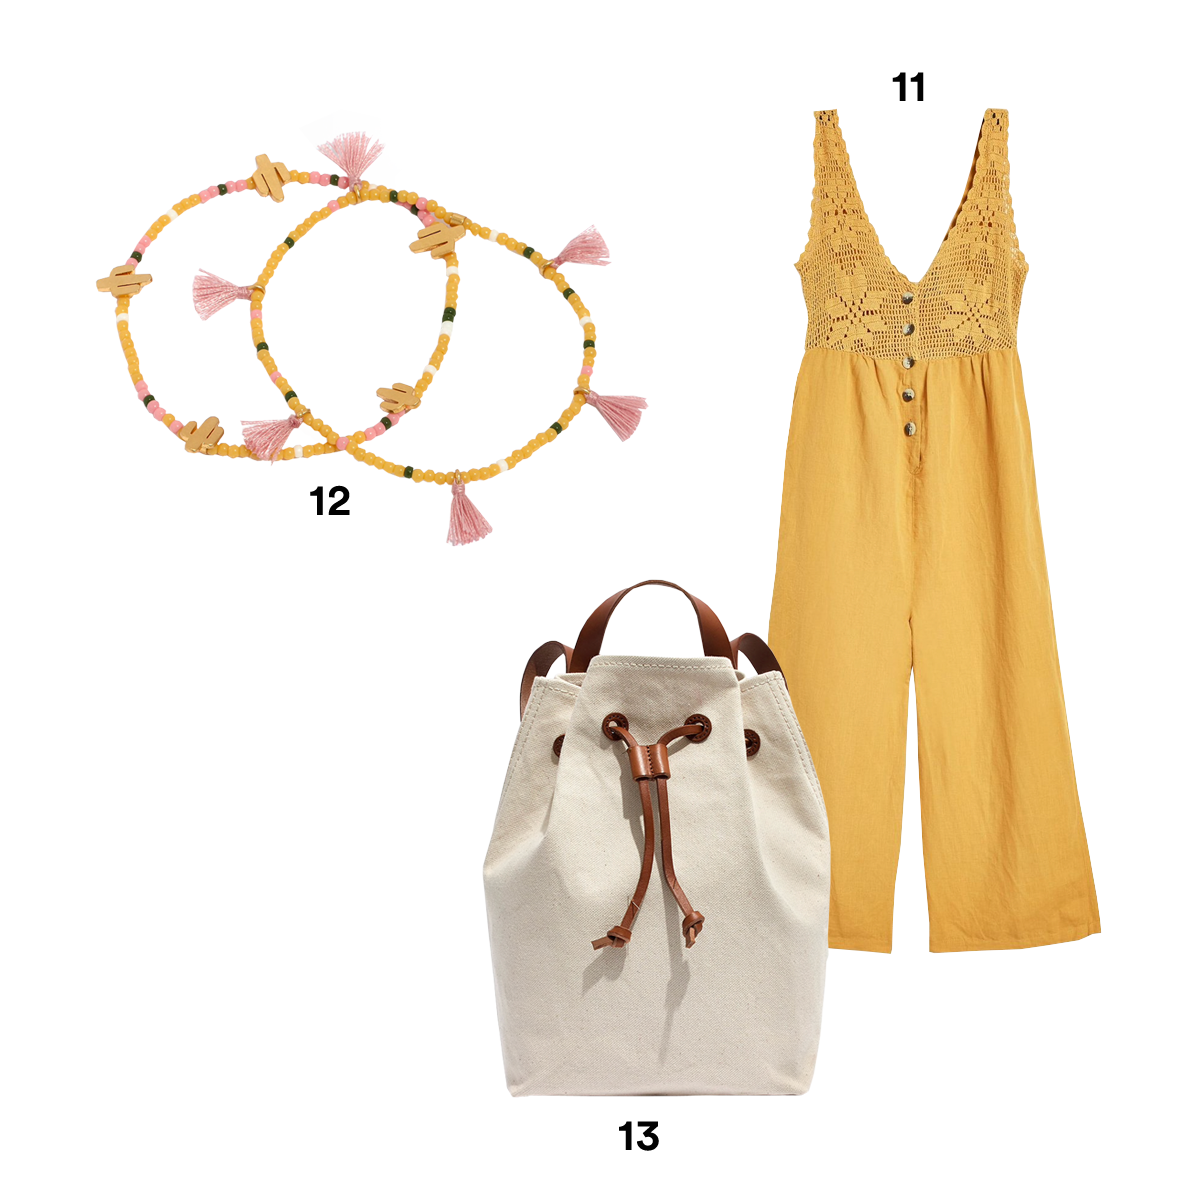 11.) TOPSHOP Crochet Button Jumpsuit. 12.) MADEWELL Two-Pack Beaded Bracelets. 13.) MADEWELL The Canvas Somerset Backpack.